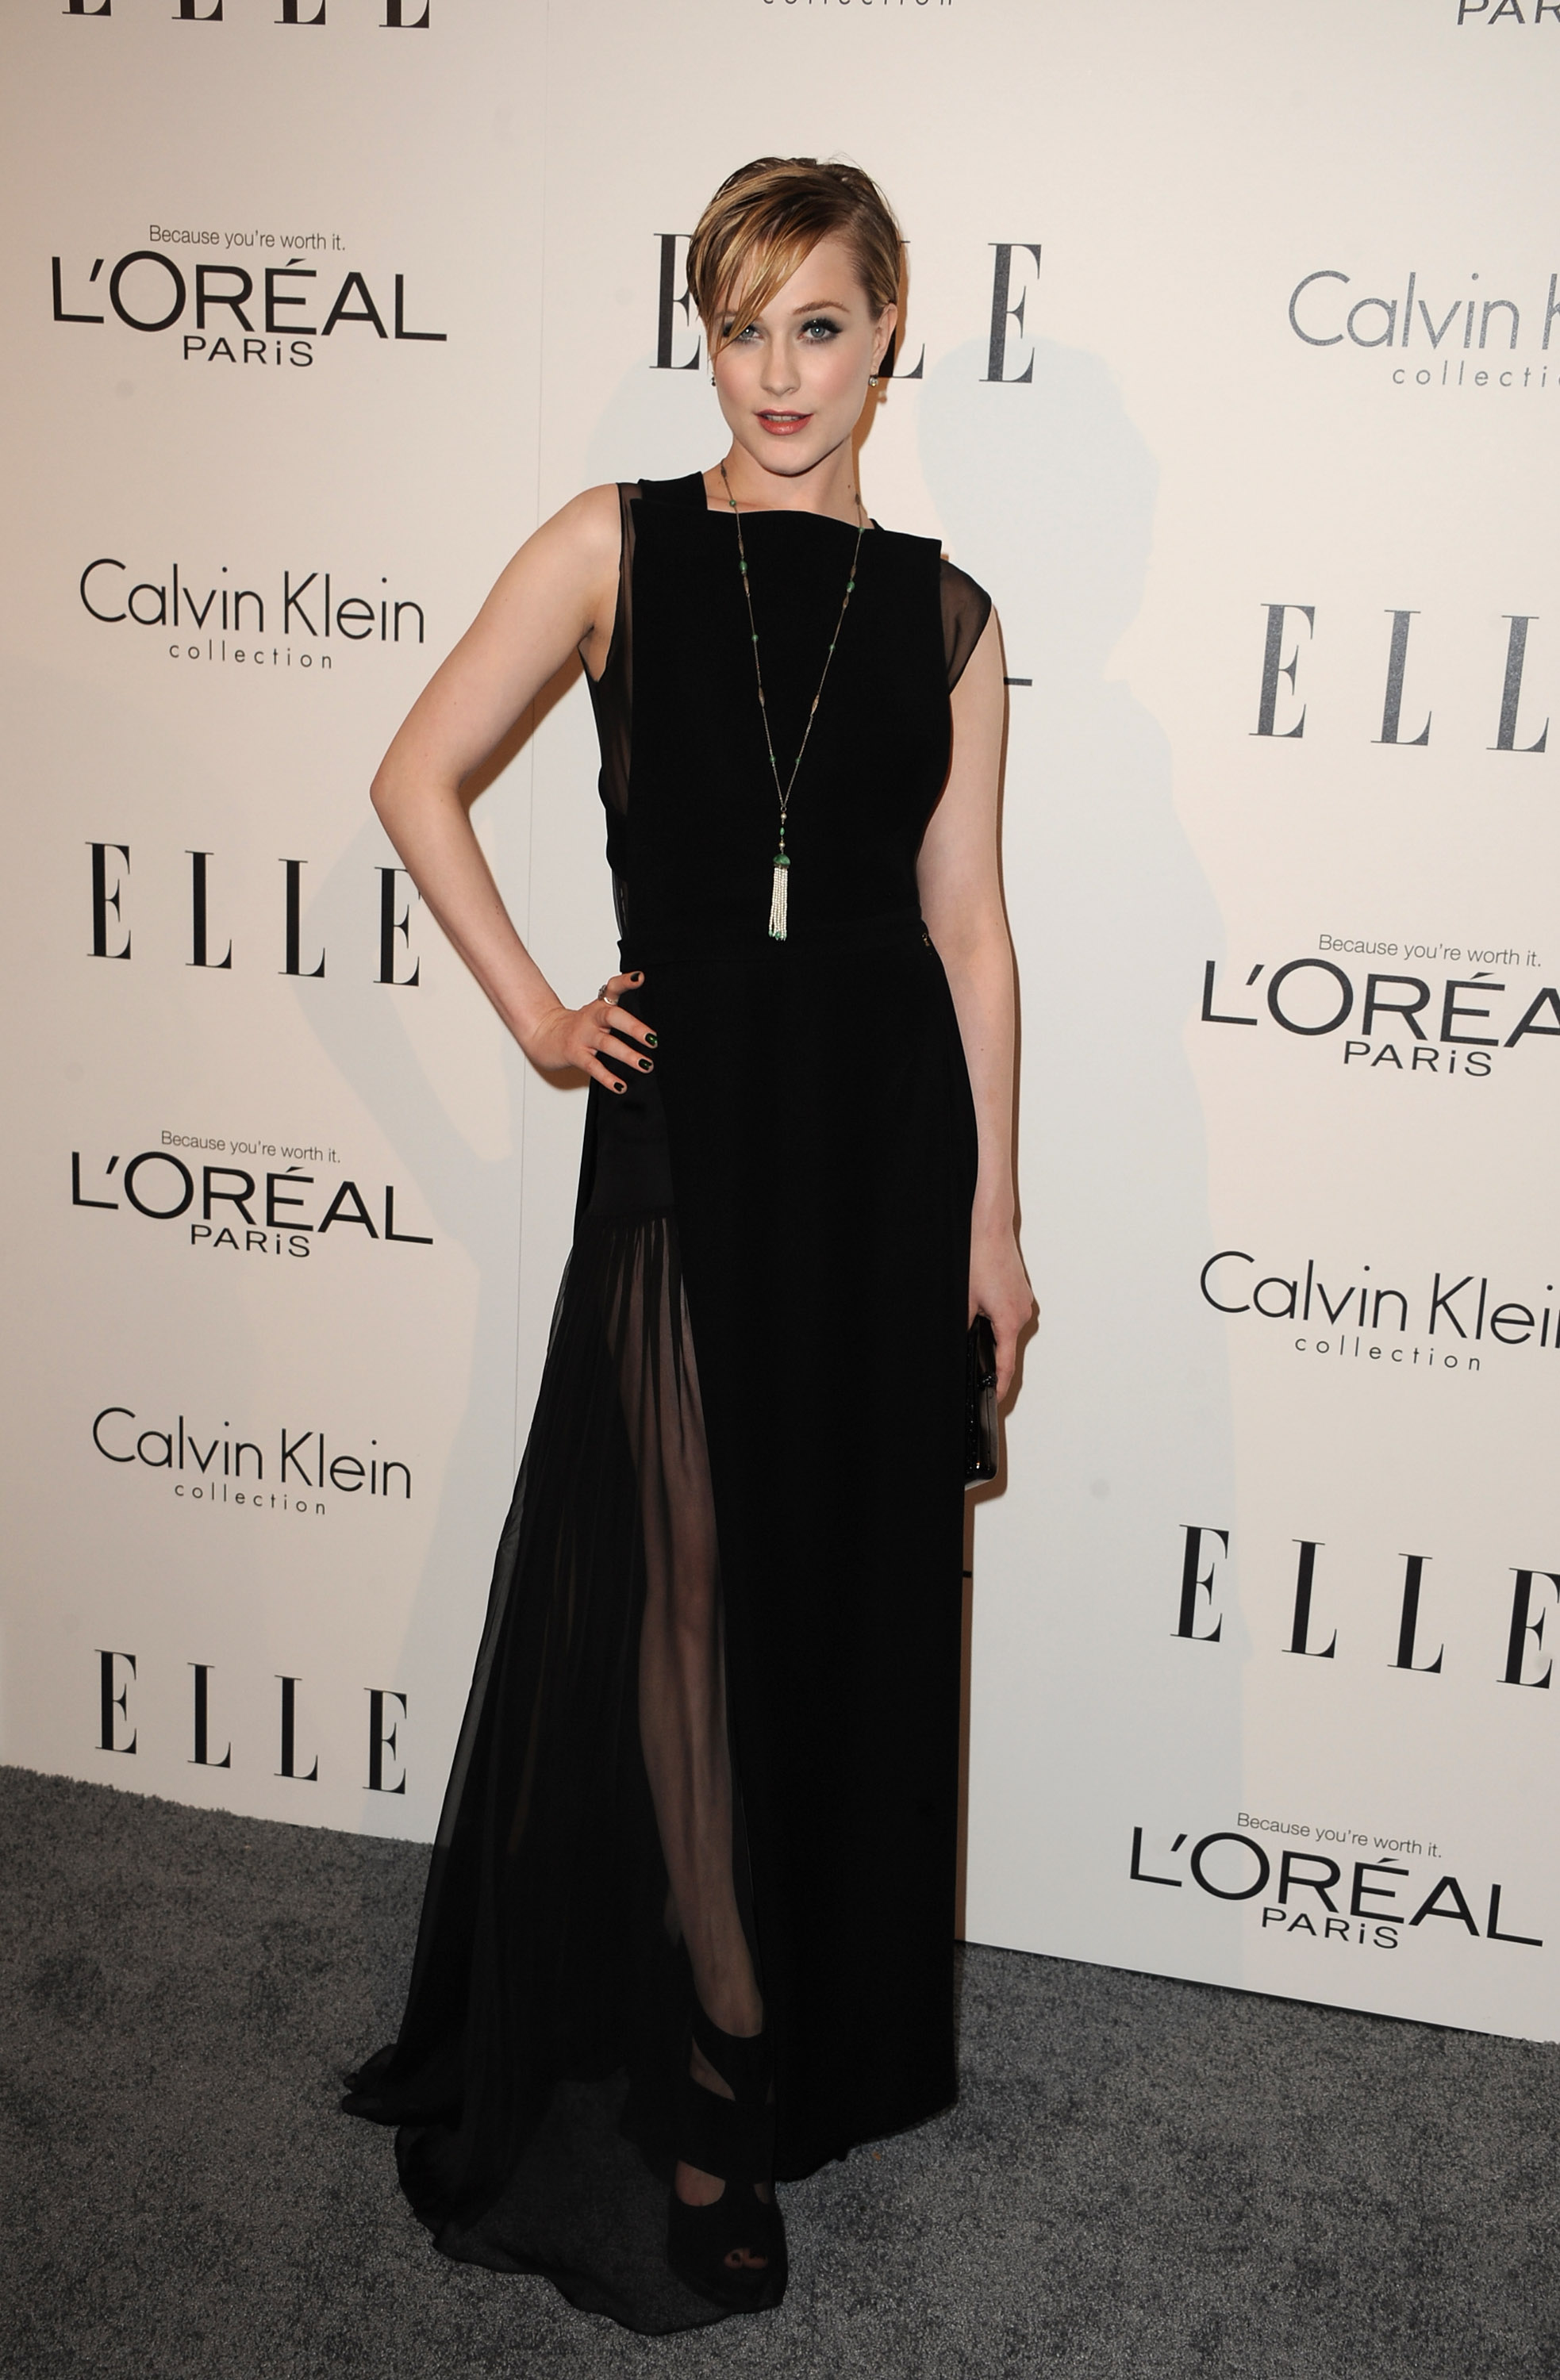 Evan Rachel Wood wore a sleek black dress to an event for Elle.